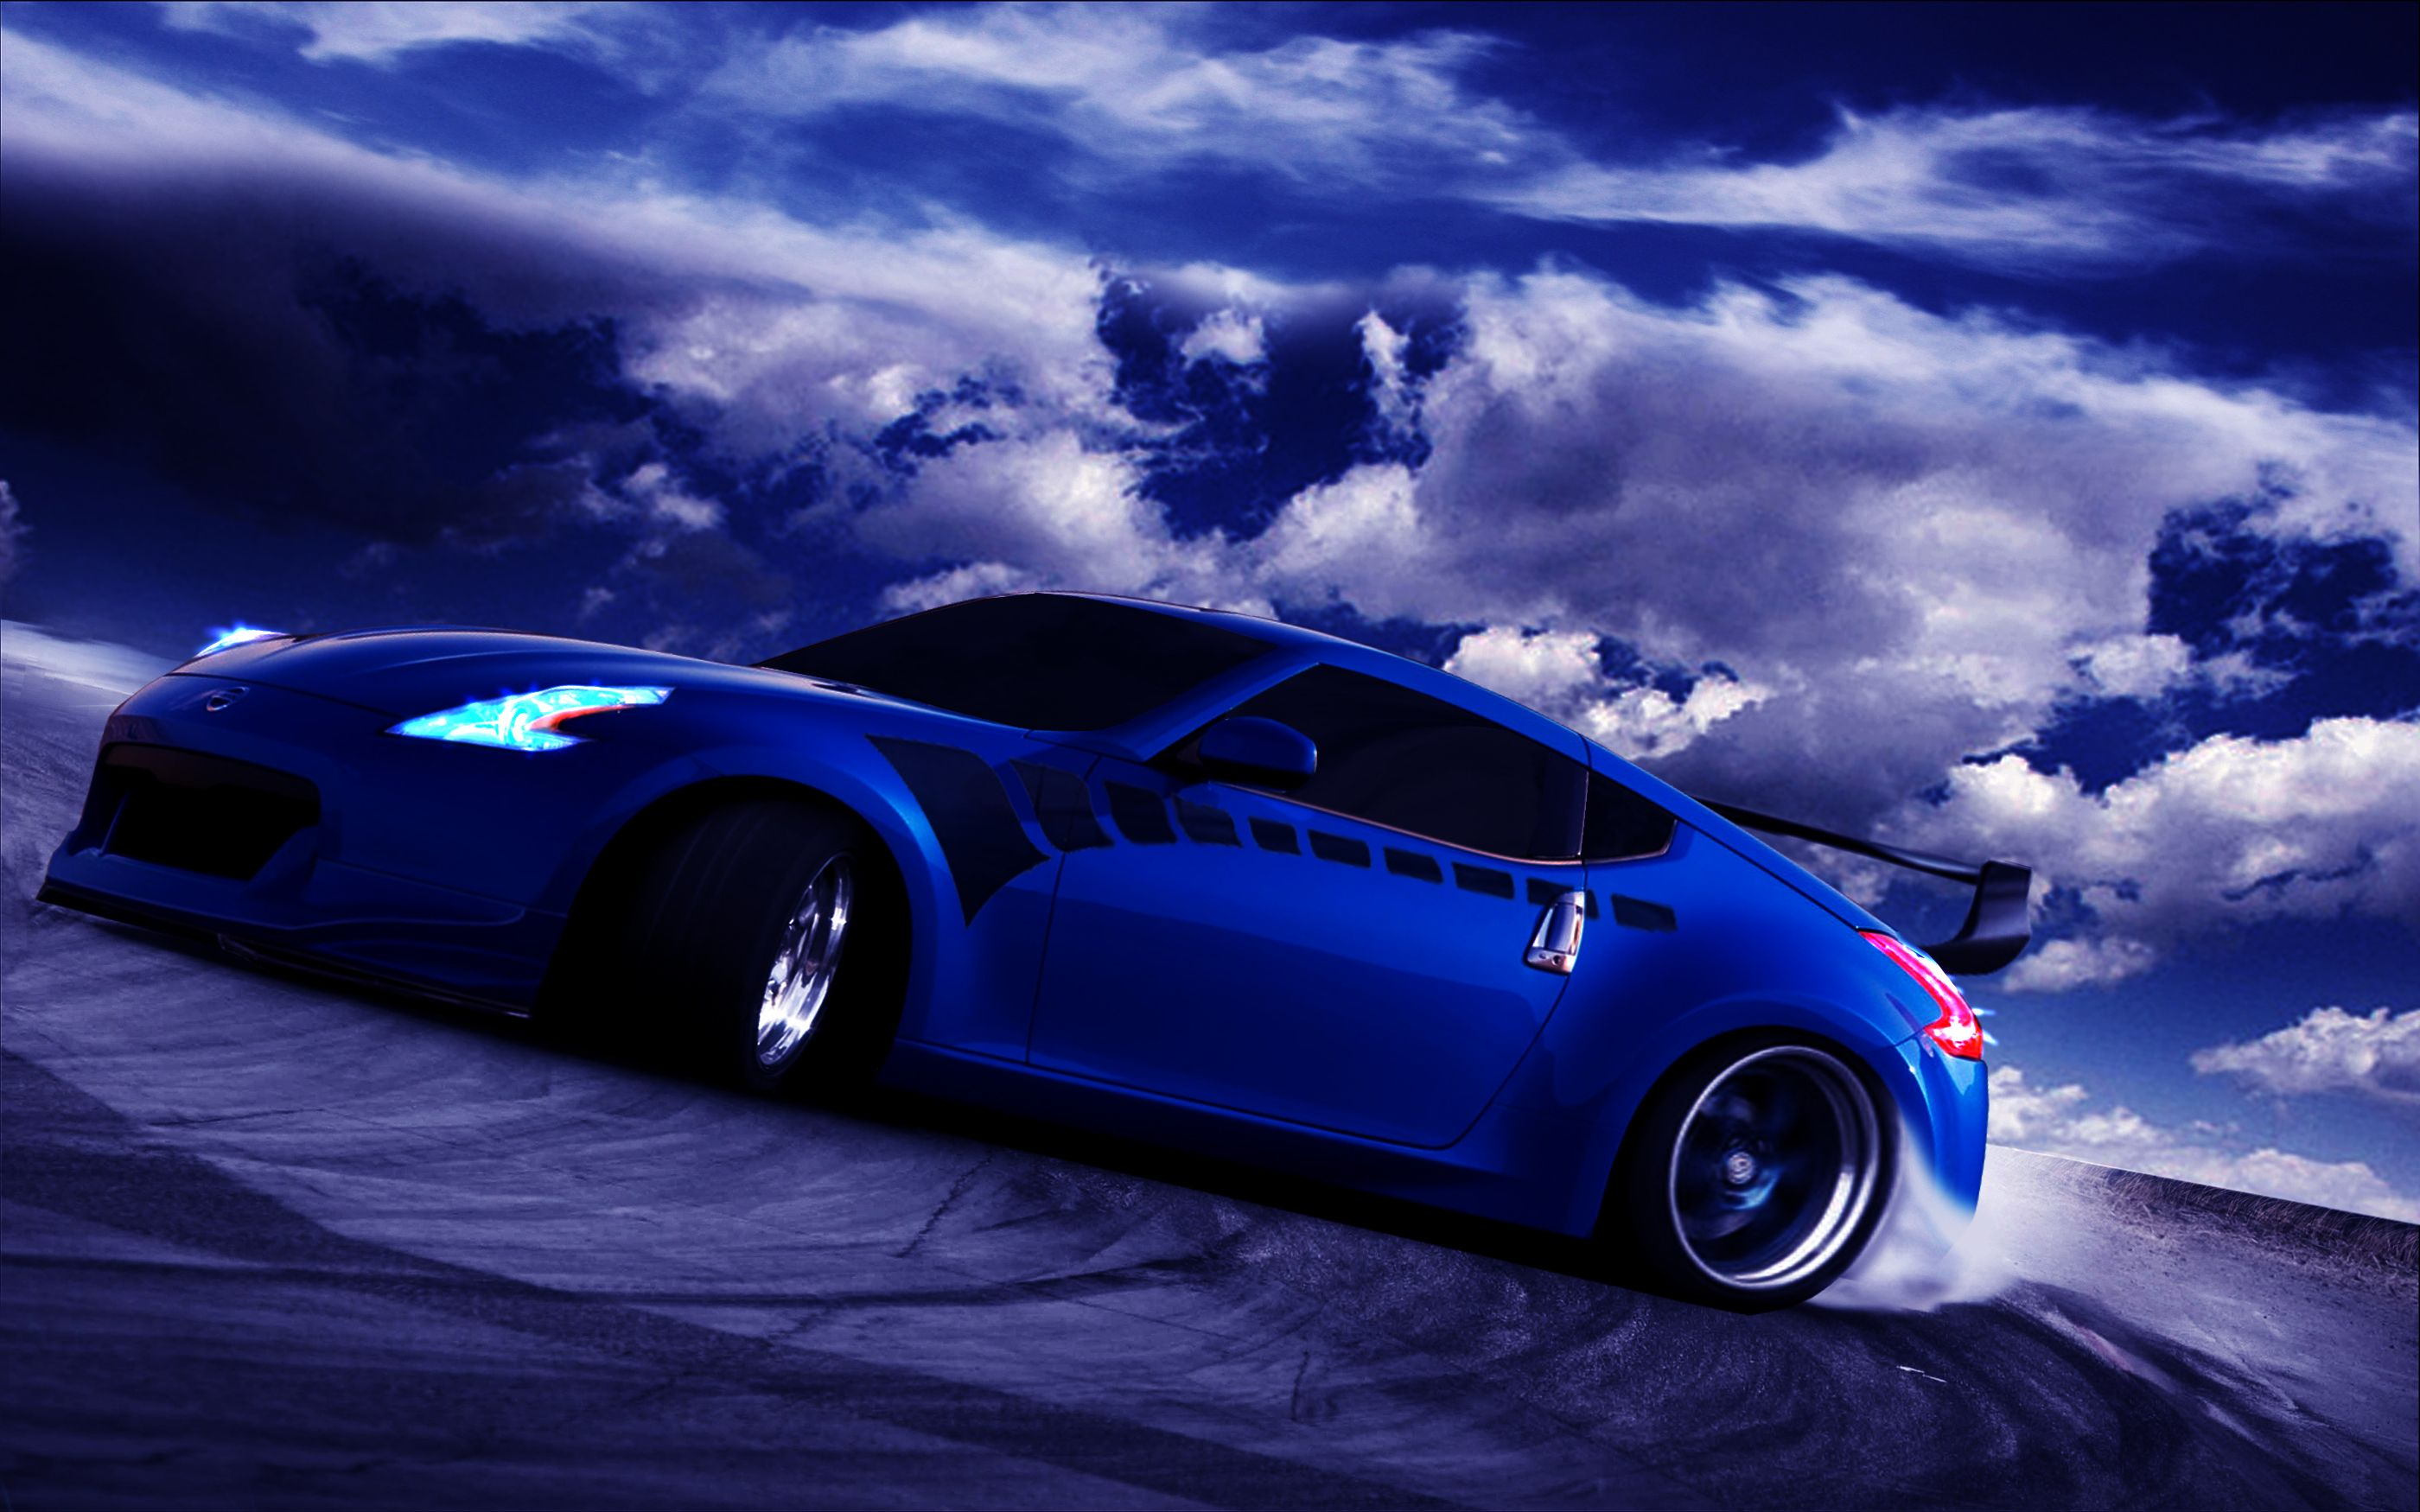 Bon Download Free Nissan Z Wallpapers For Your Mobile Phone By | HD Wallpapers  | Pinterest | Nissan, Wallpaper And Desktop Backgrounds